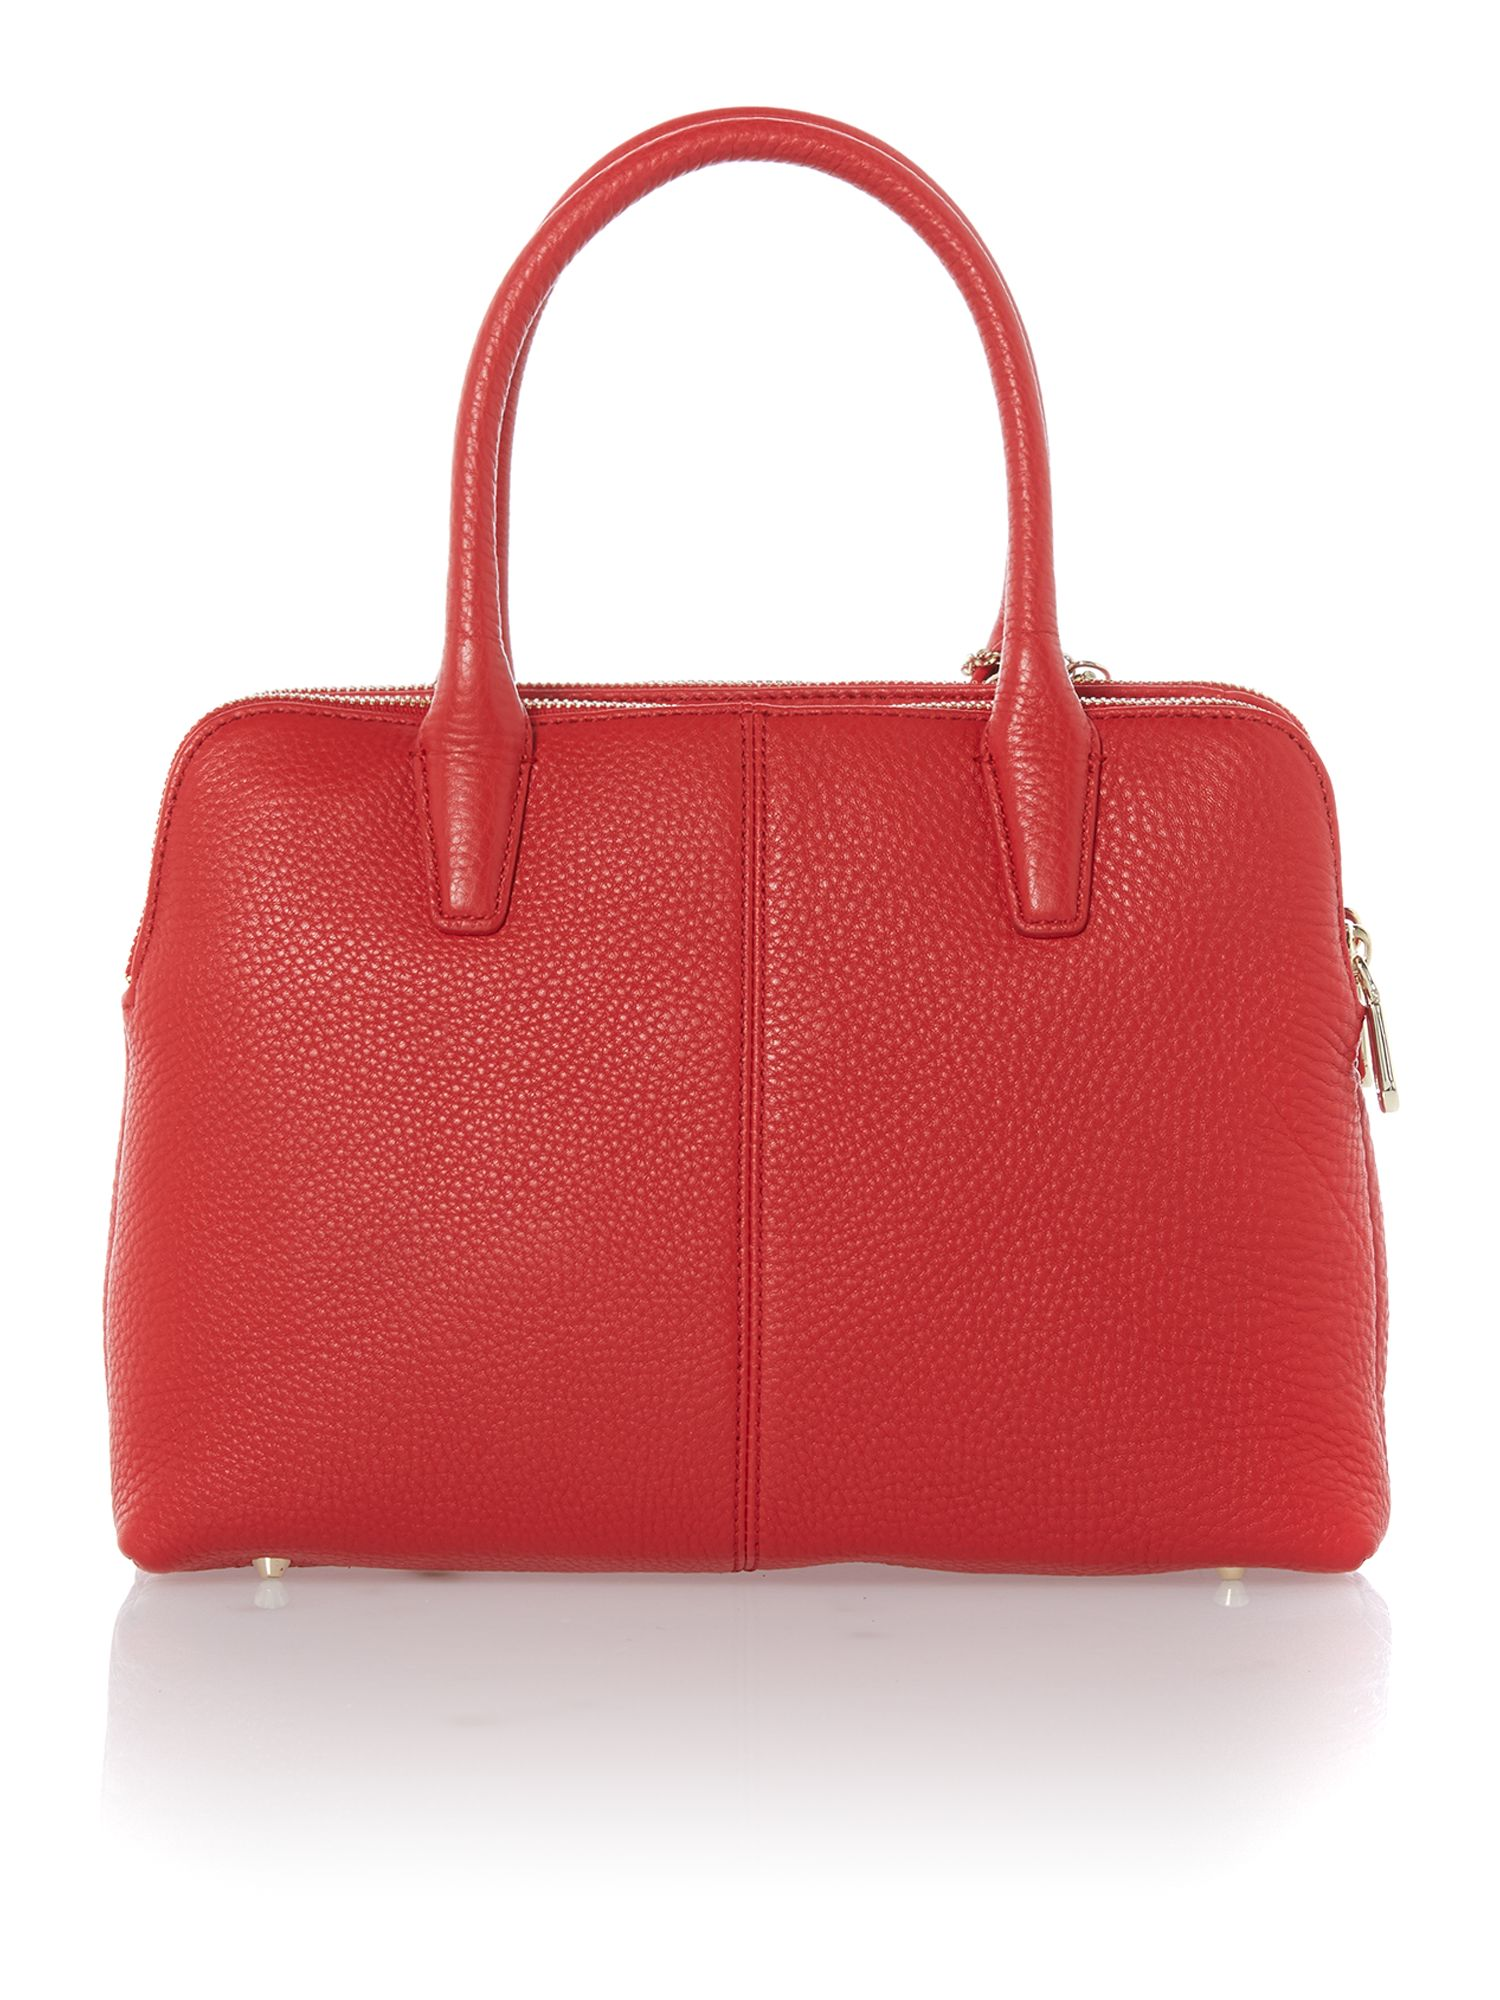 Tribeca red double zip satchel bag